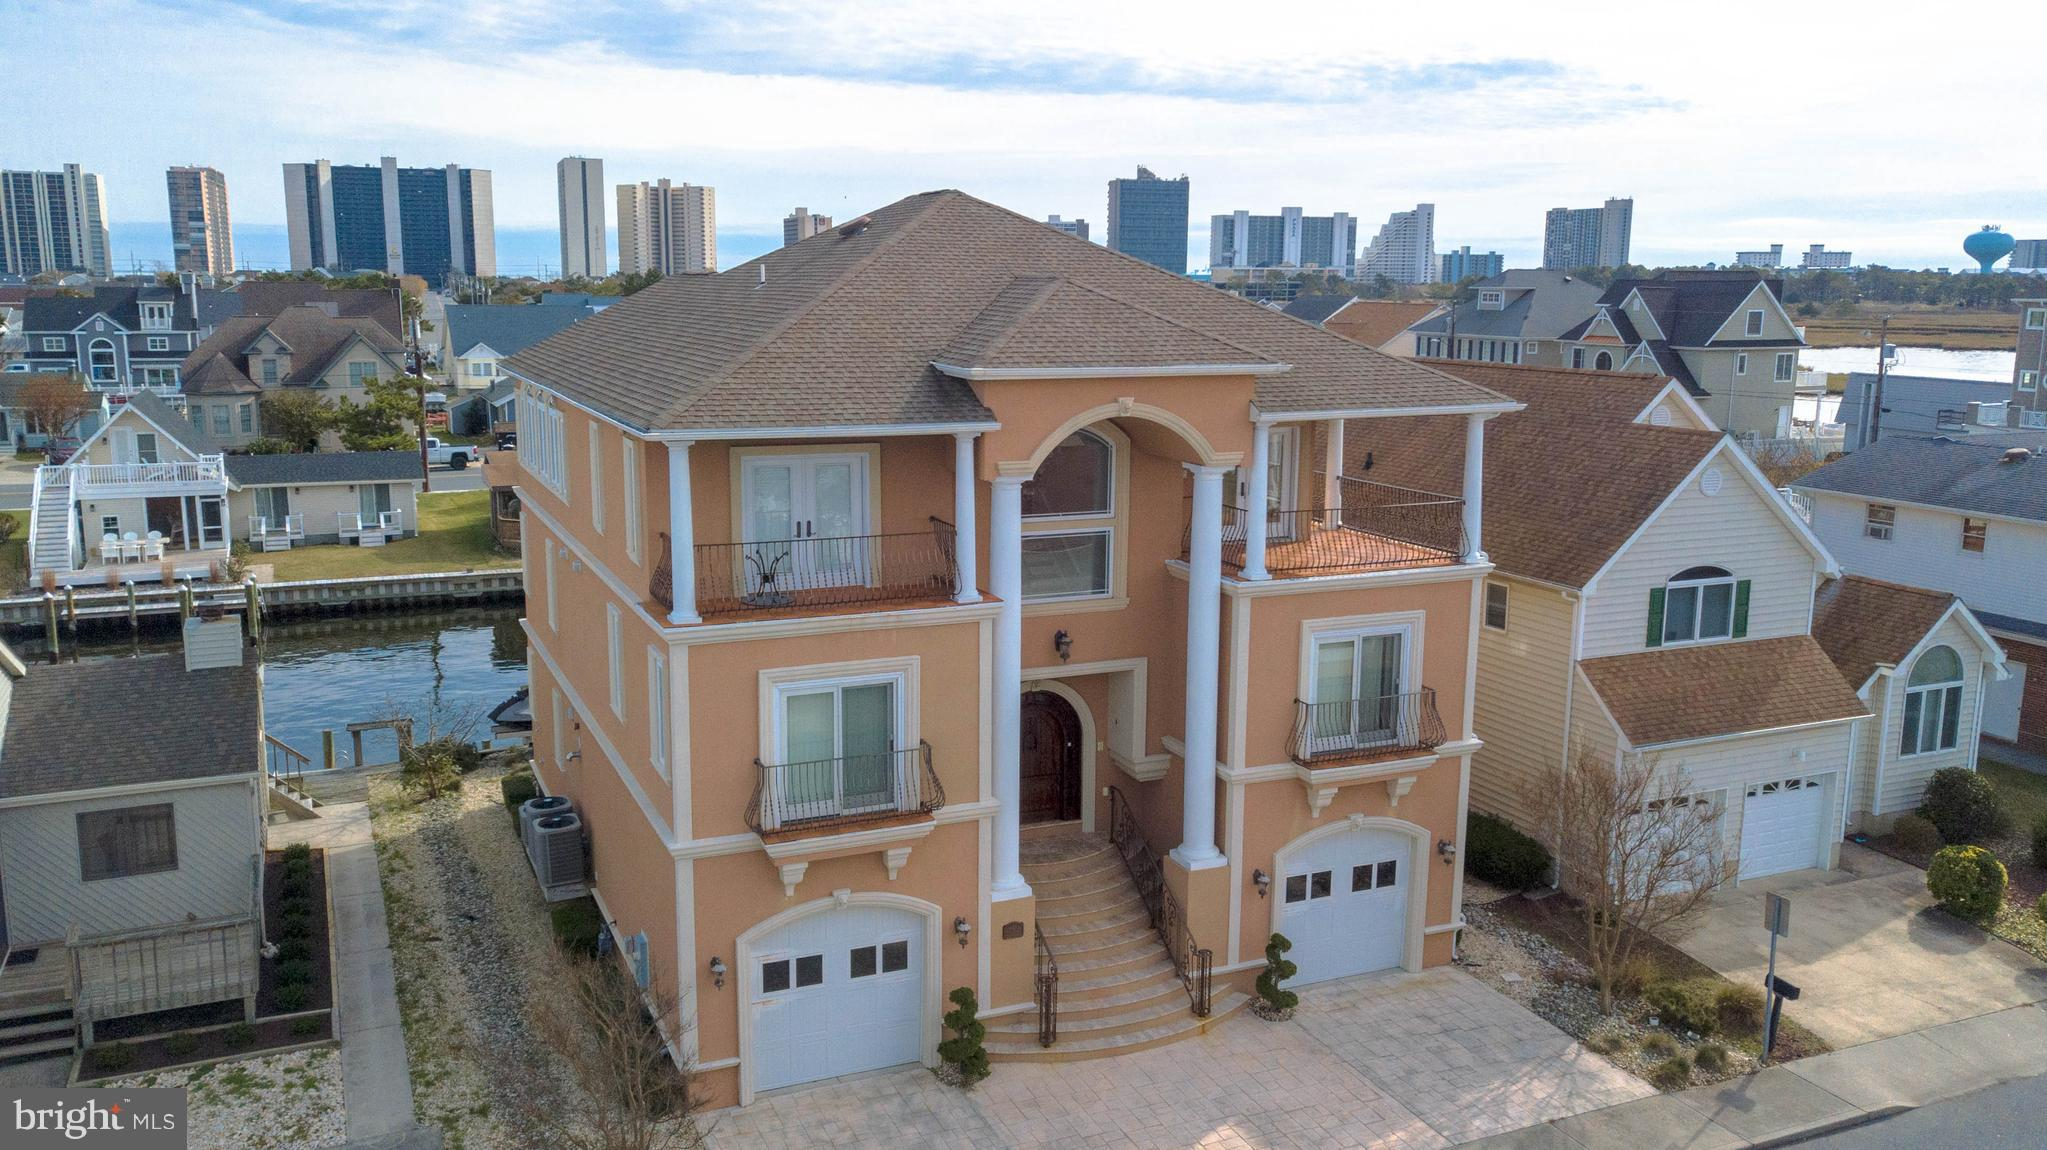 10604 Point Lookout Rd, Ocean City, MD, 21842